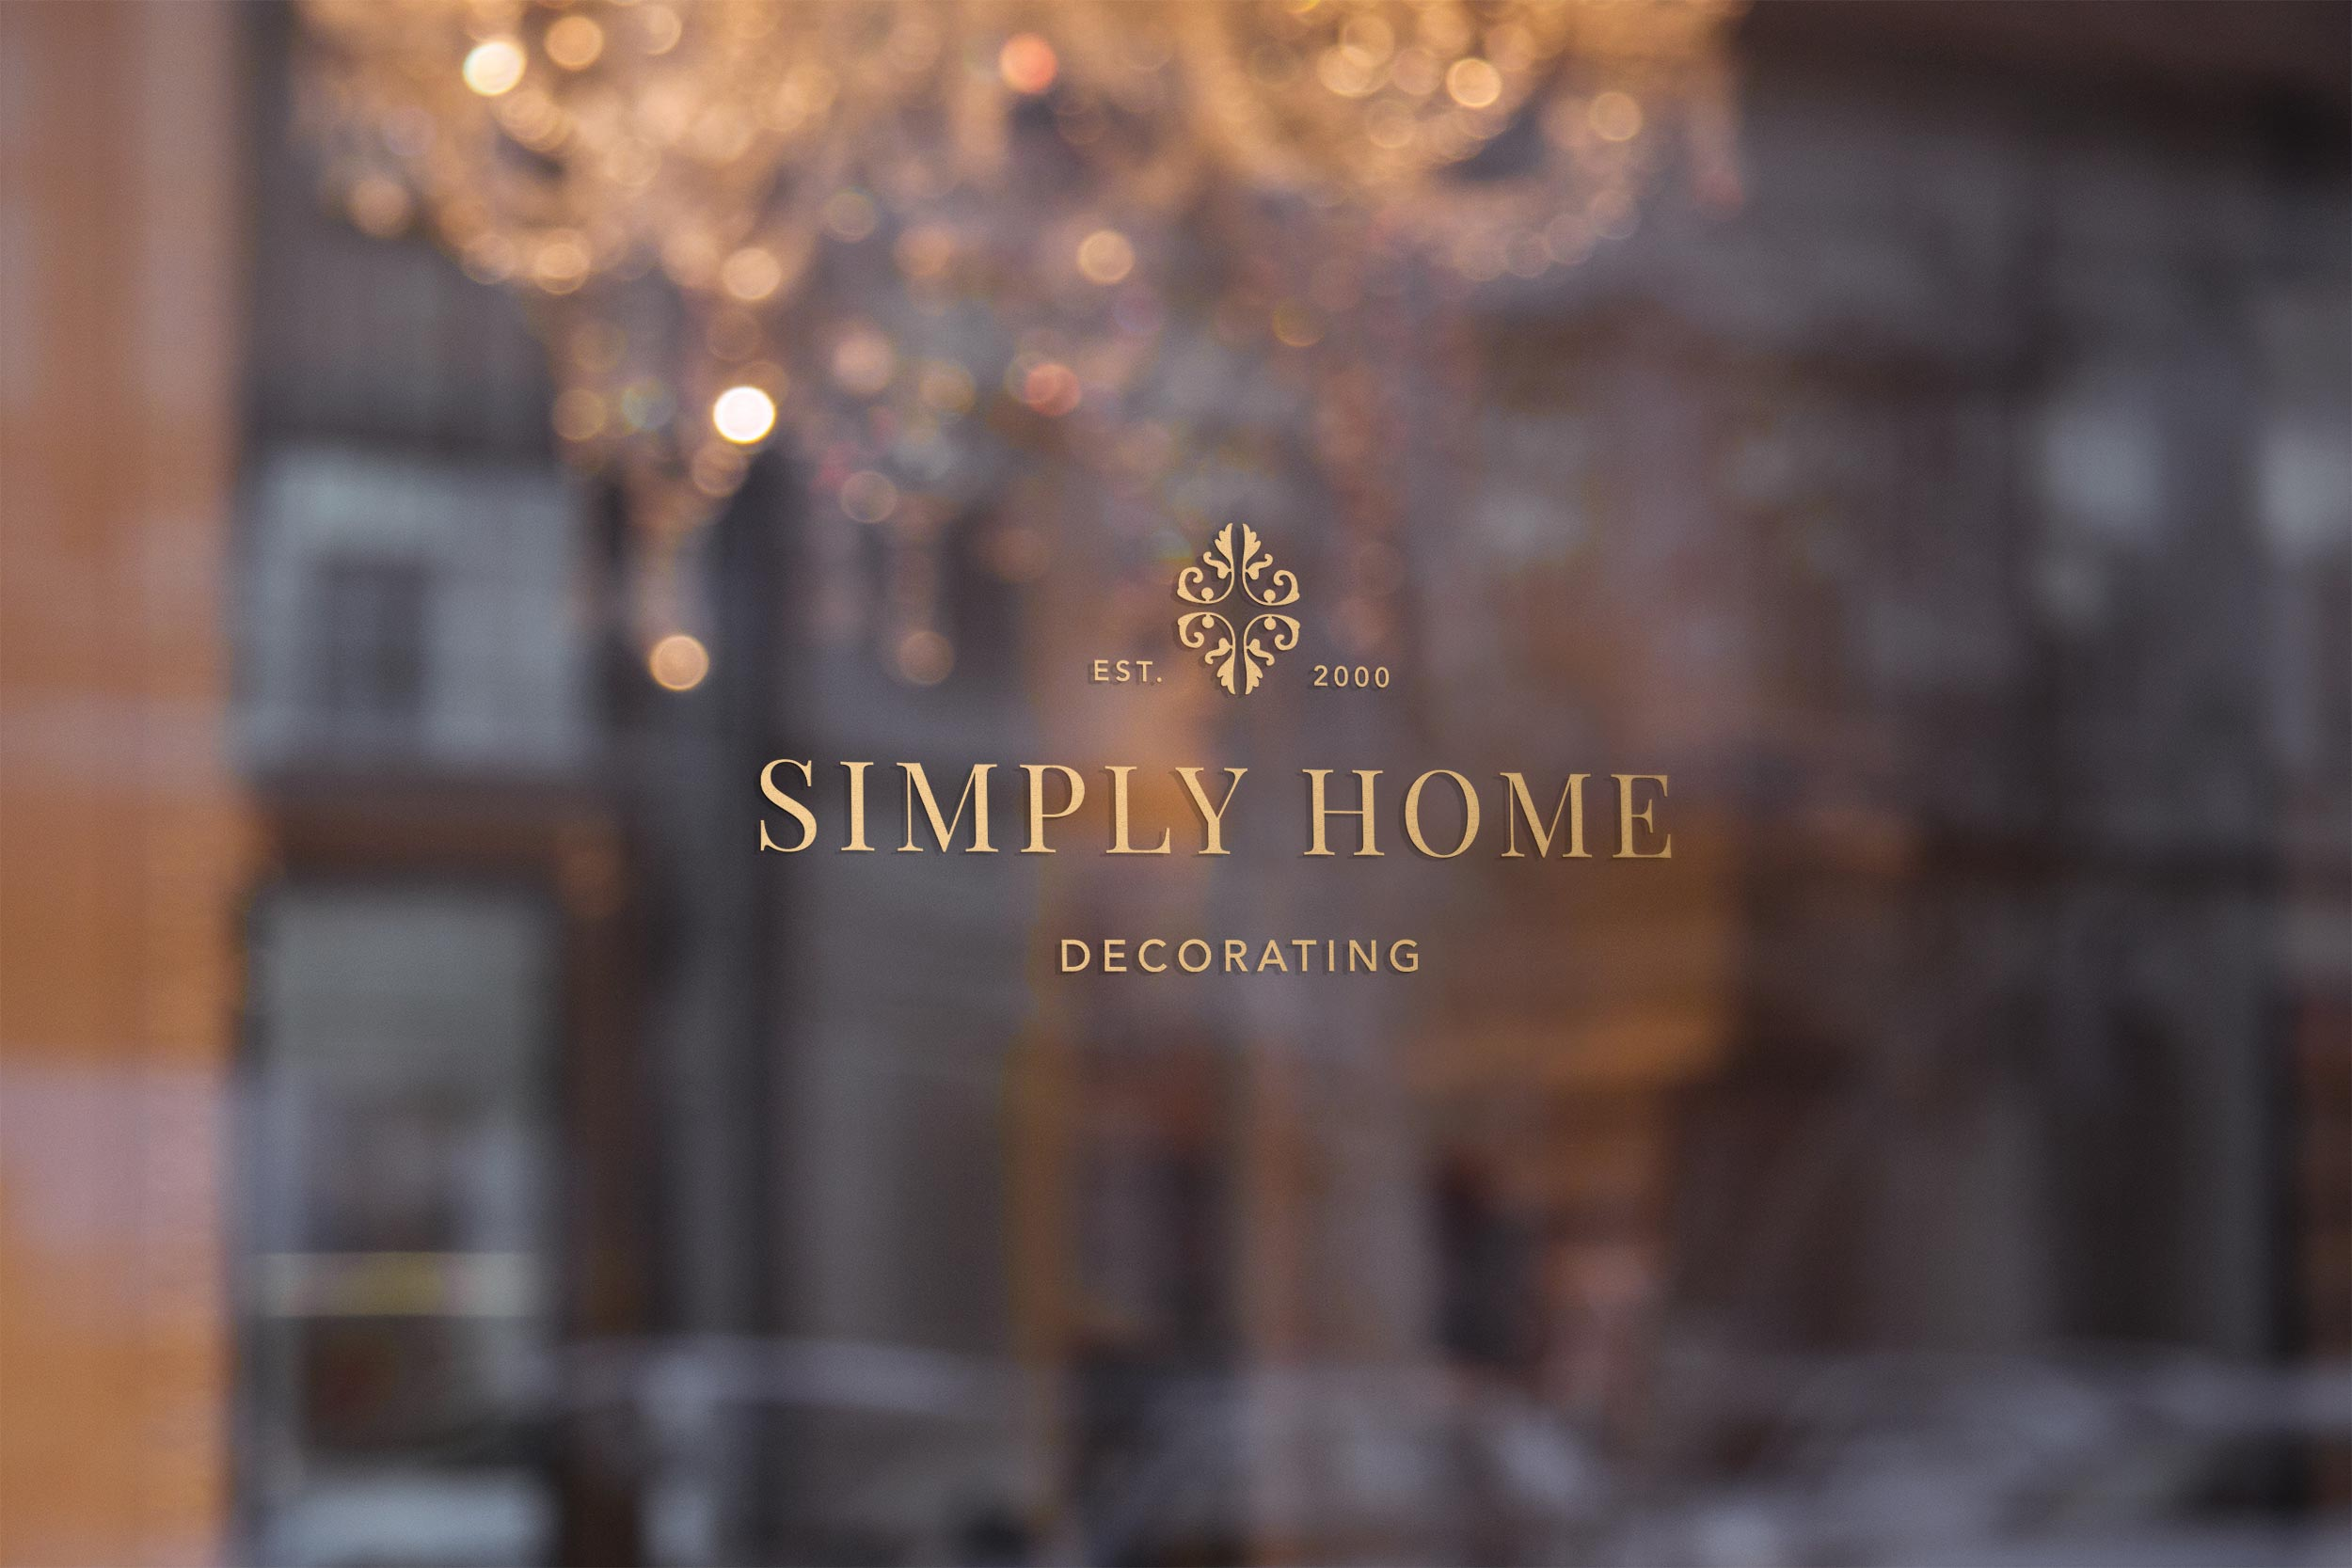 logo design window decal simply home decorating design by taney creative